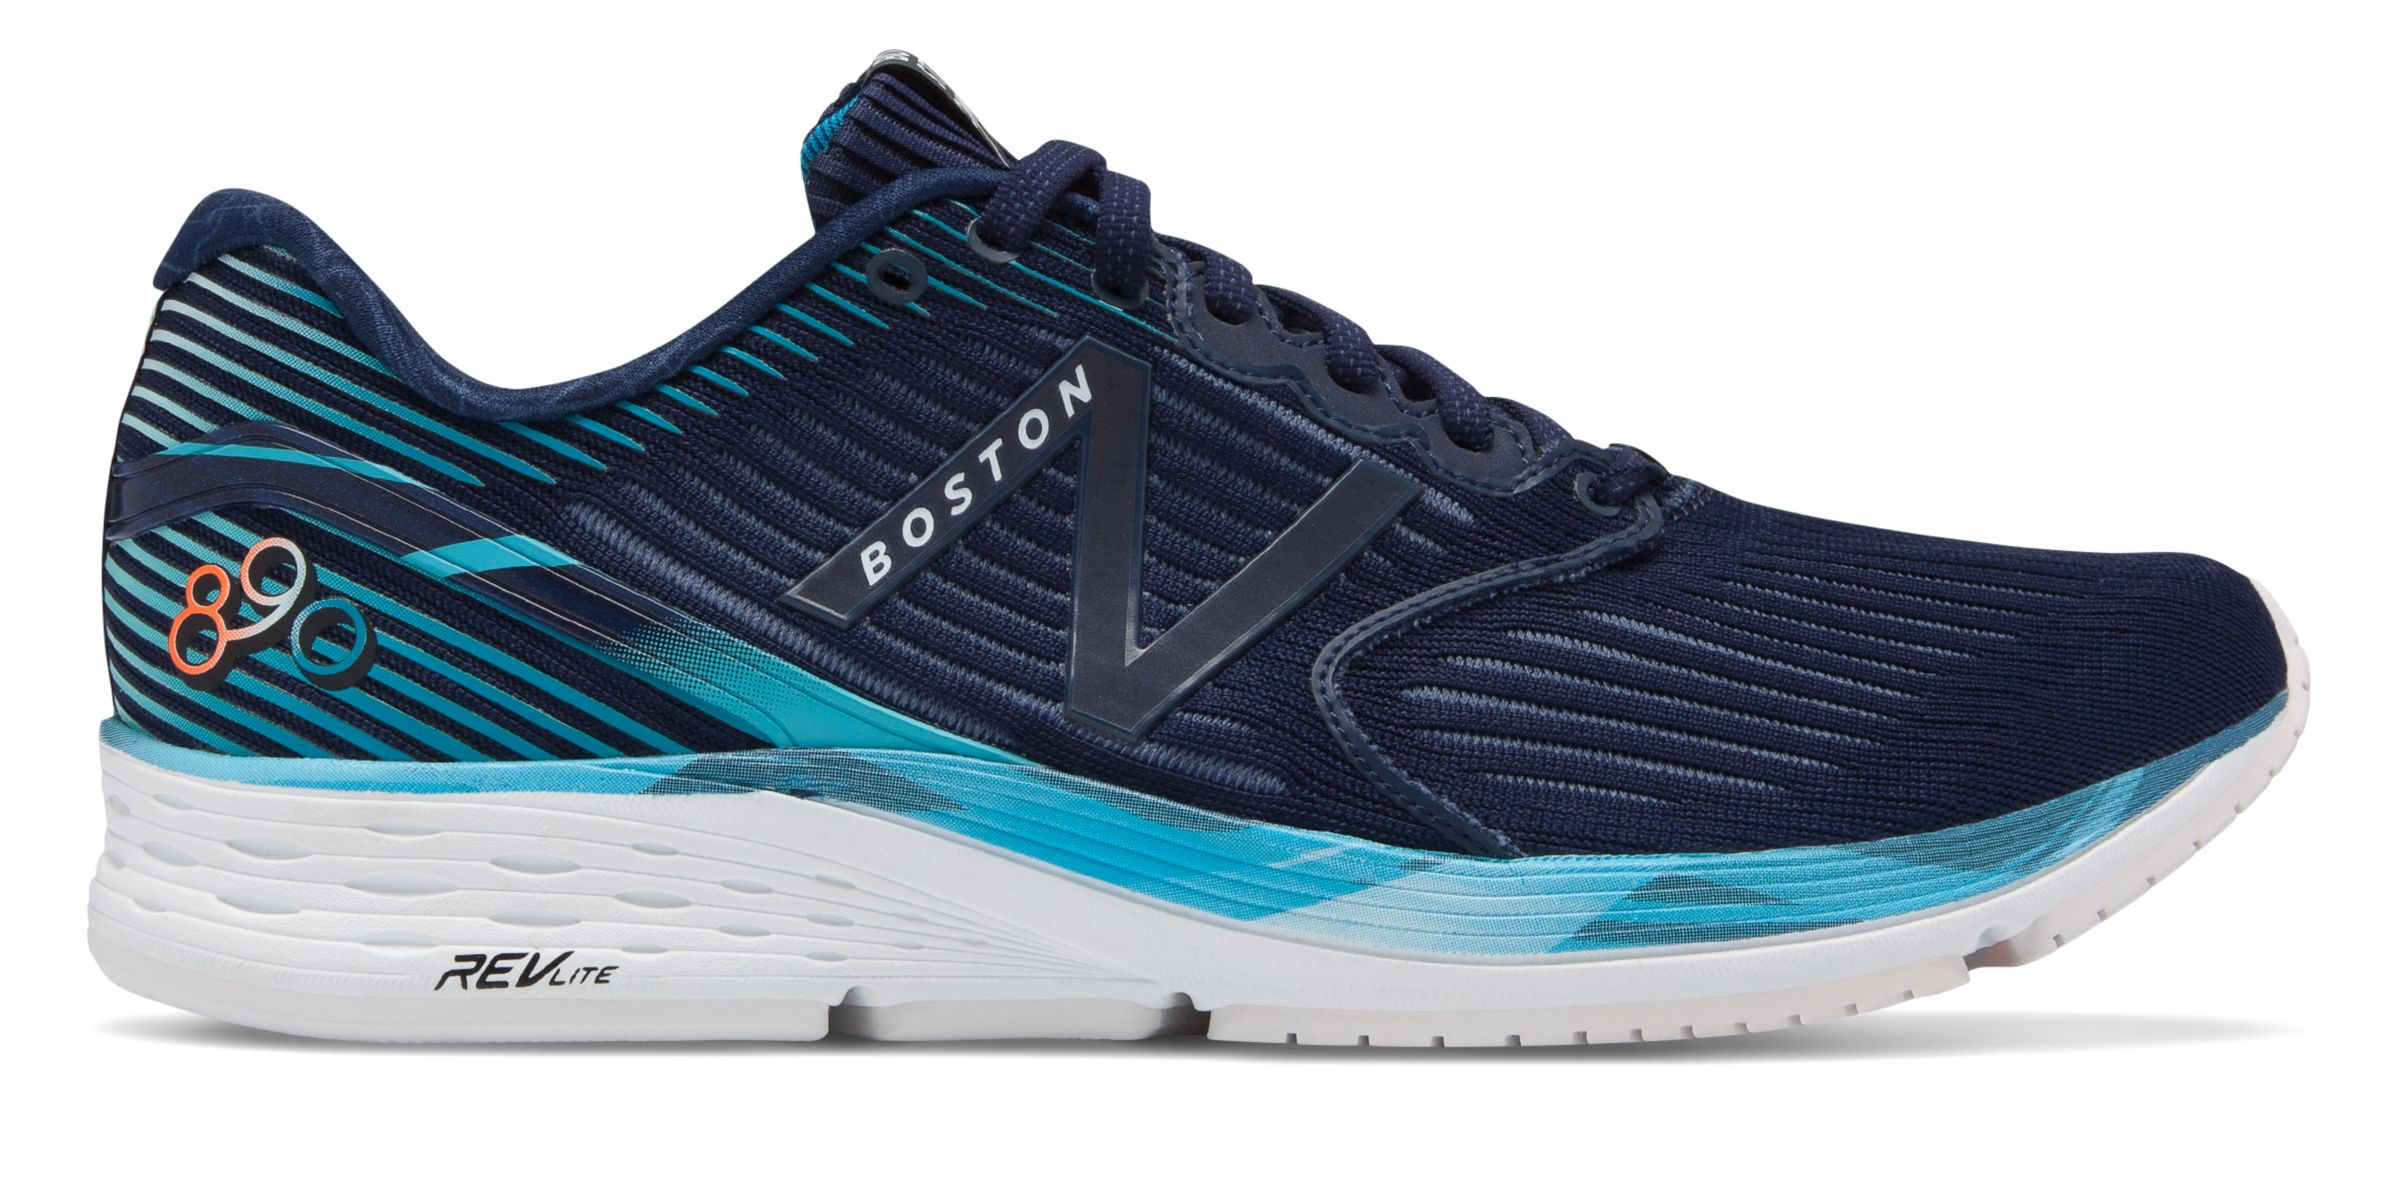 Details about New Balance Women's 890v6 Boston Shoes Navy with Navy